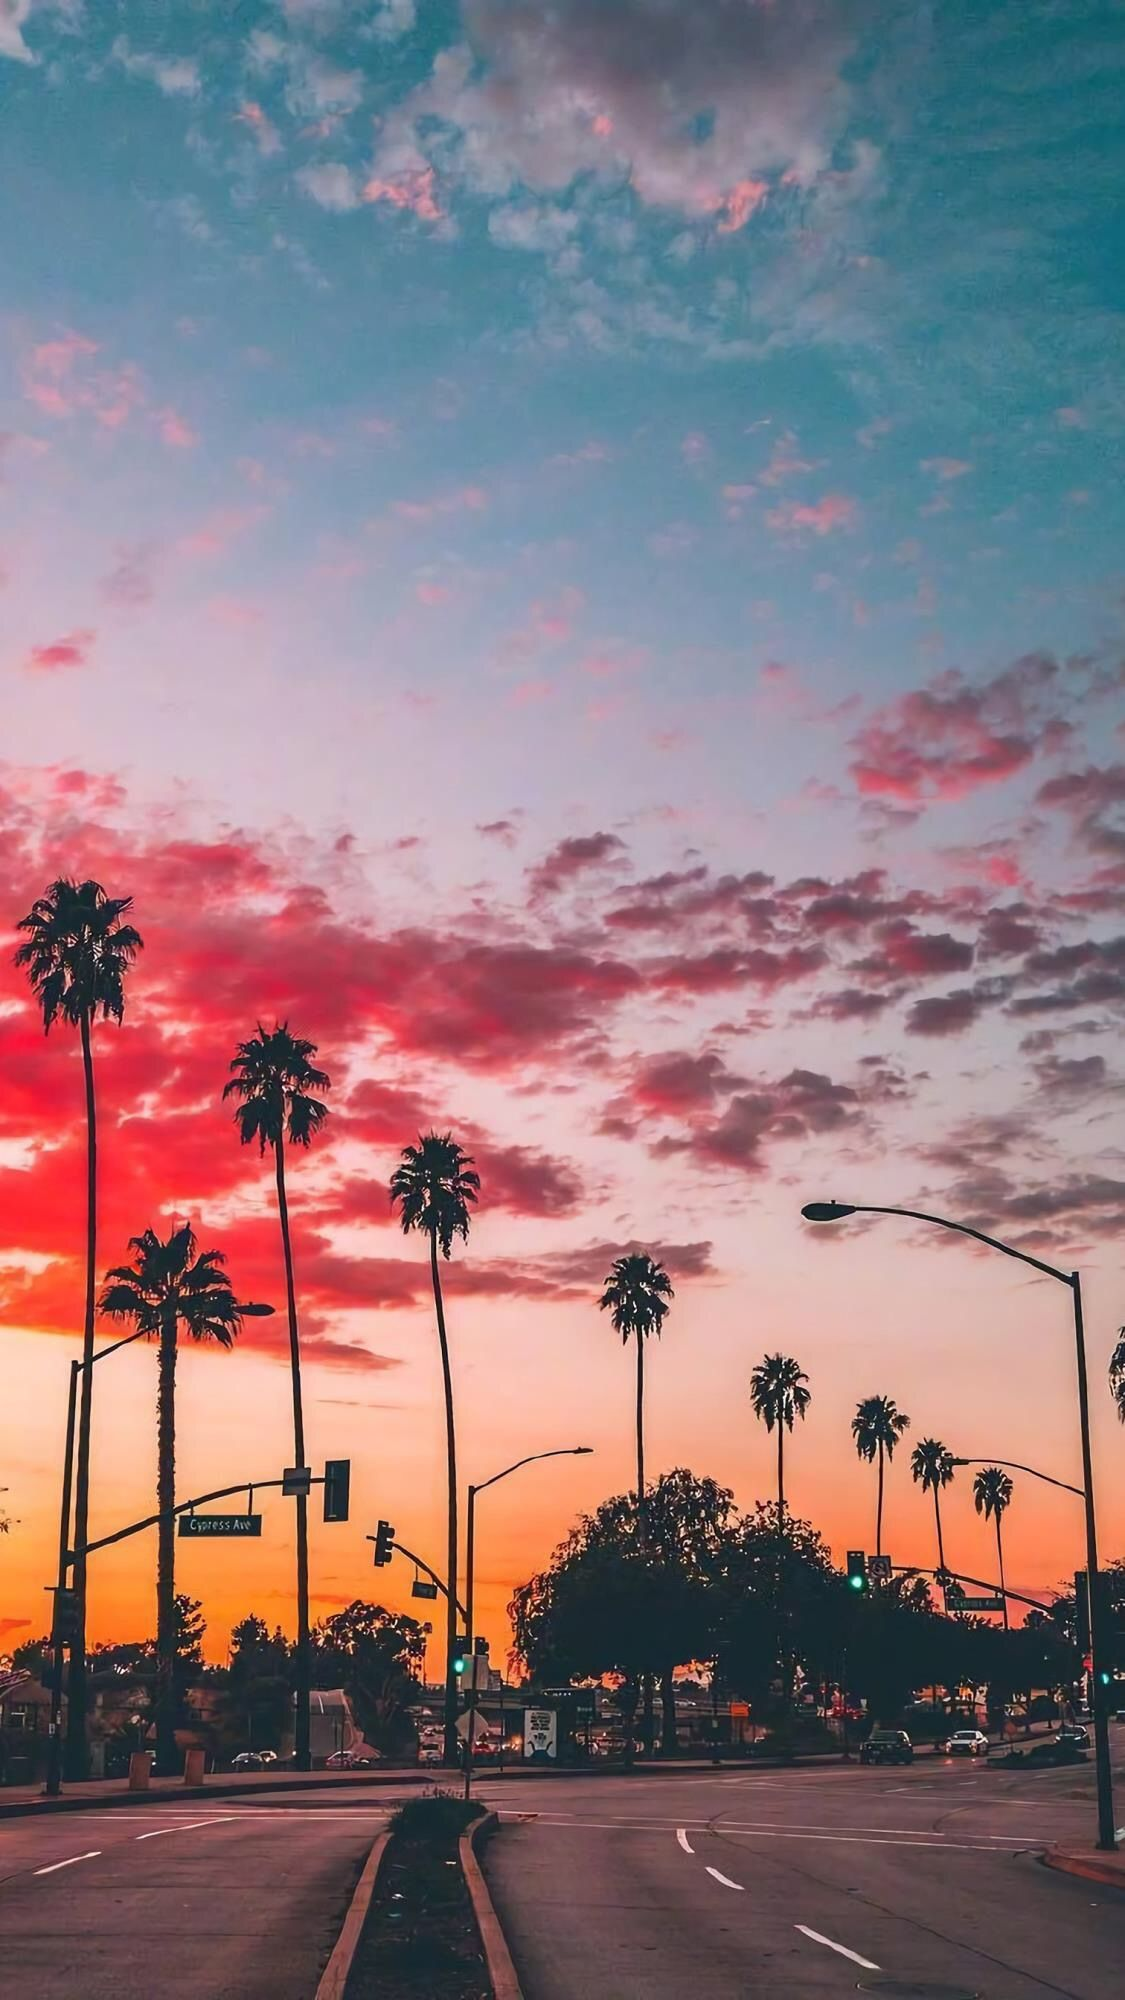 pink sunset, exuberant palm trees in the city for your